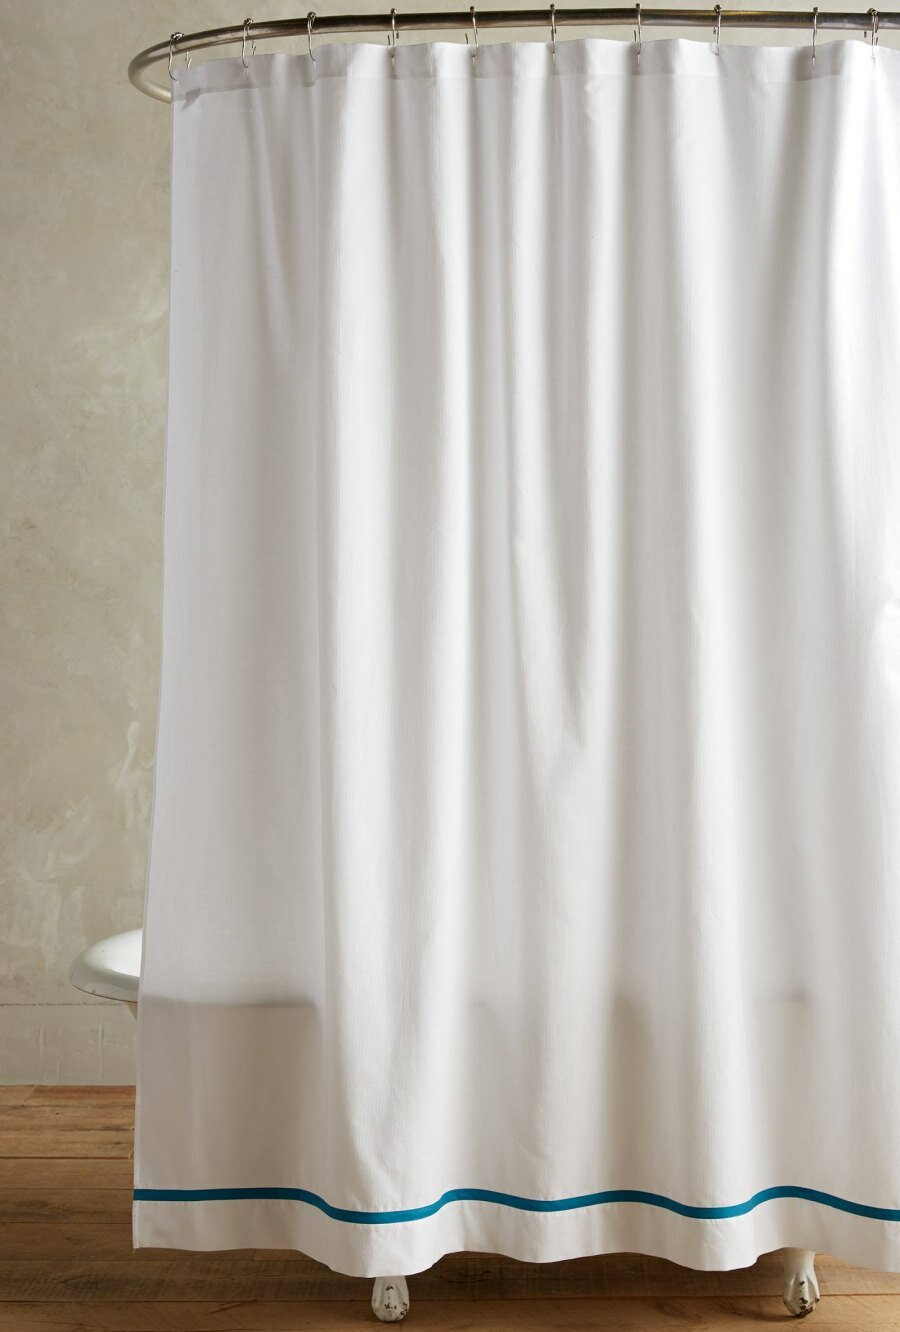 Restoration Hardware Shower Curtain | Bathroom Curtain Rods | Restoration Hardware Drapes